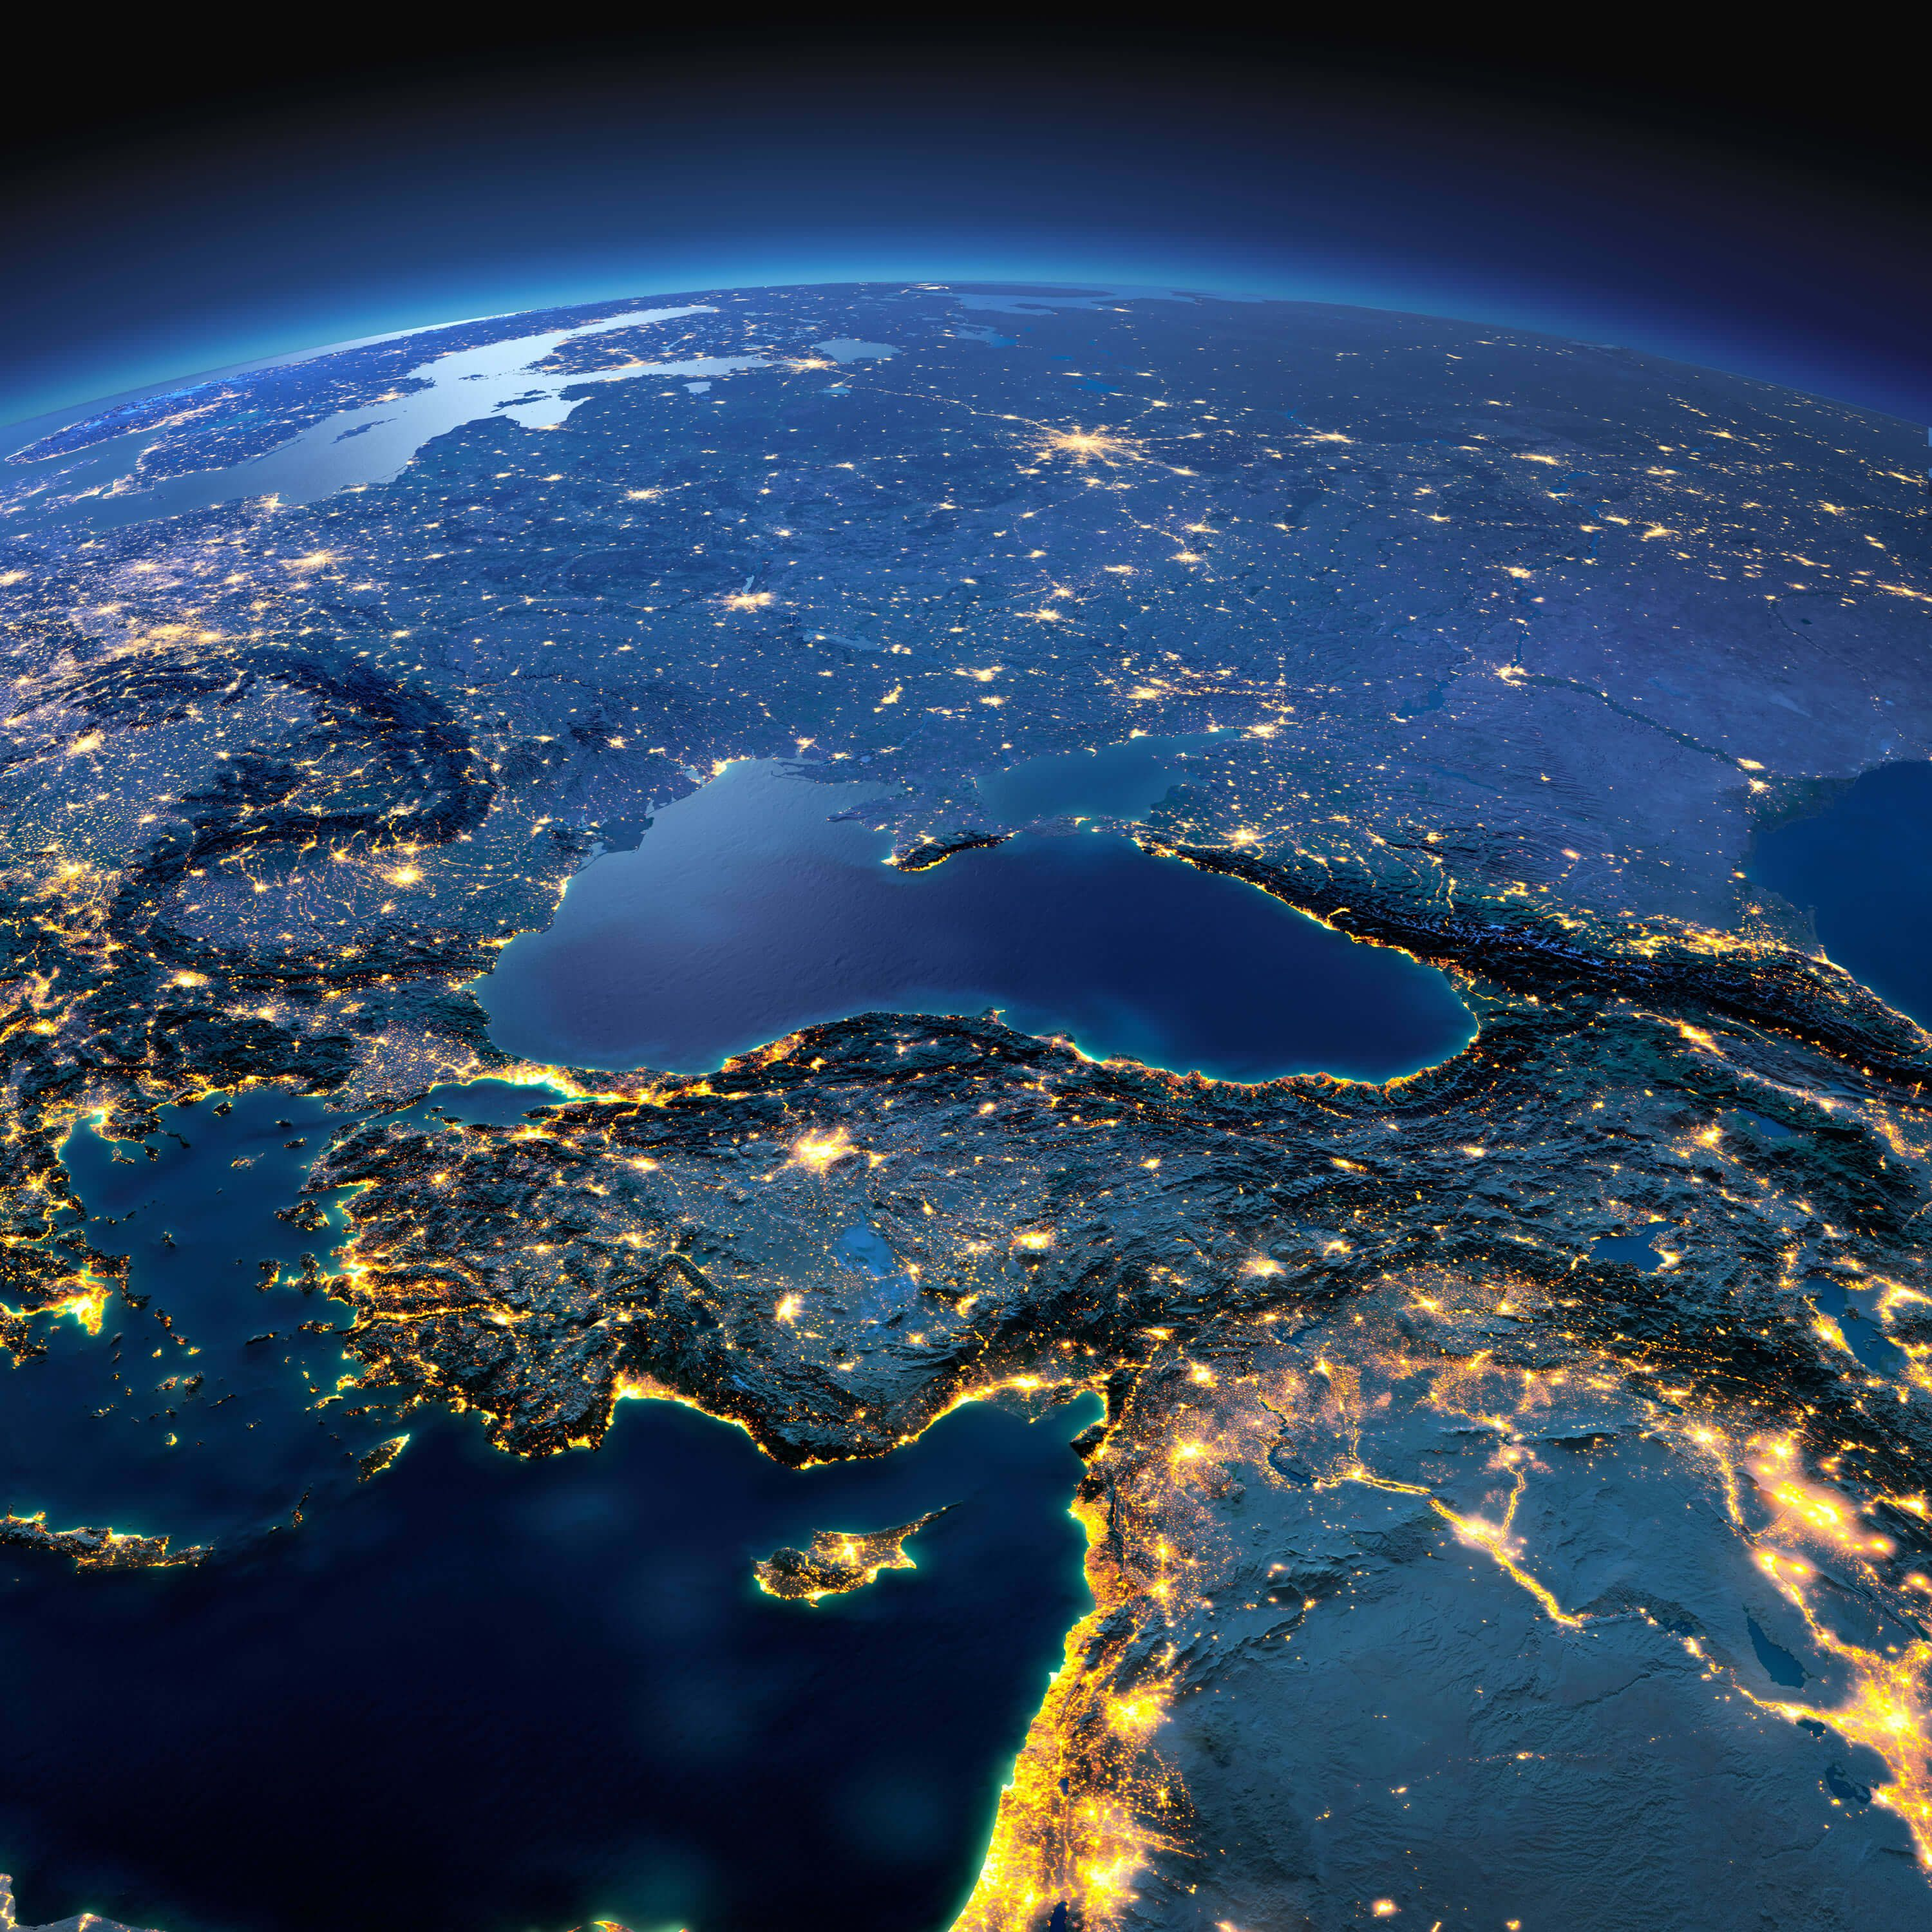 Turkey And Middle East Countries Night Satellite Image Maps Of - Middle east satellite map